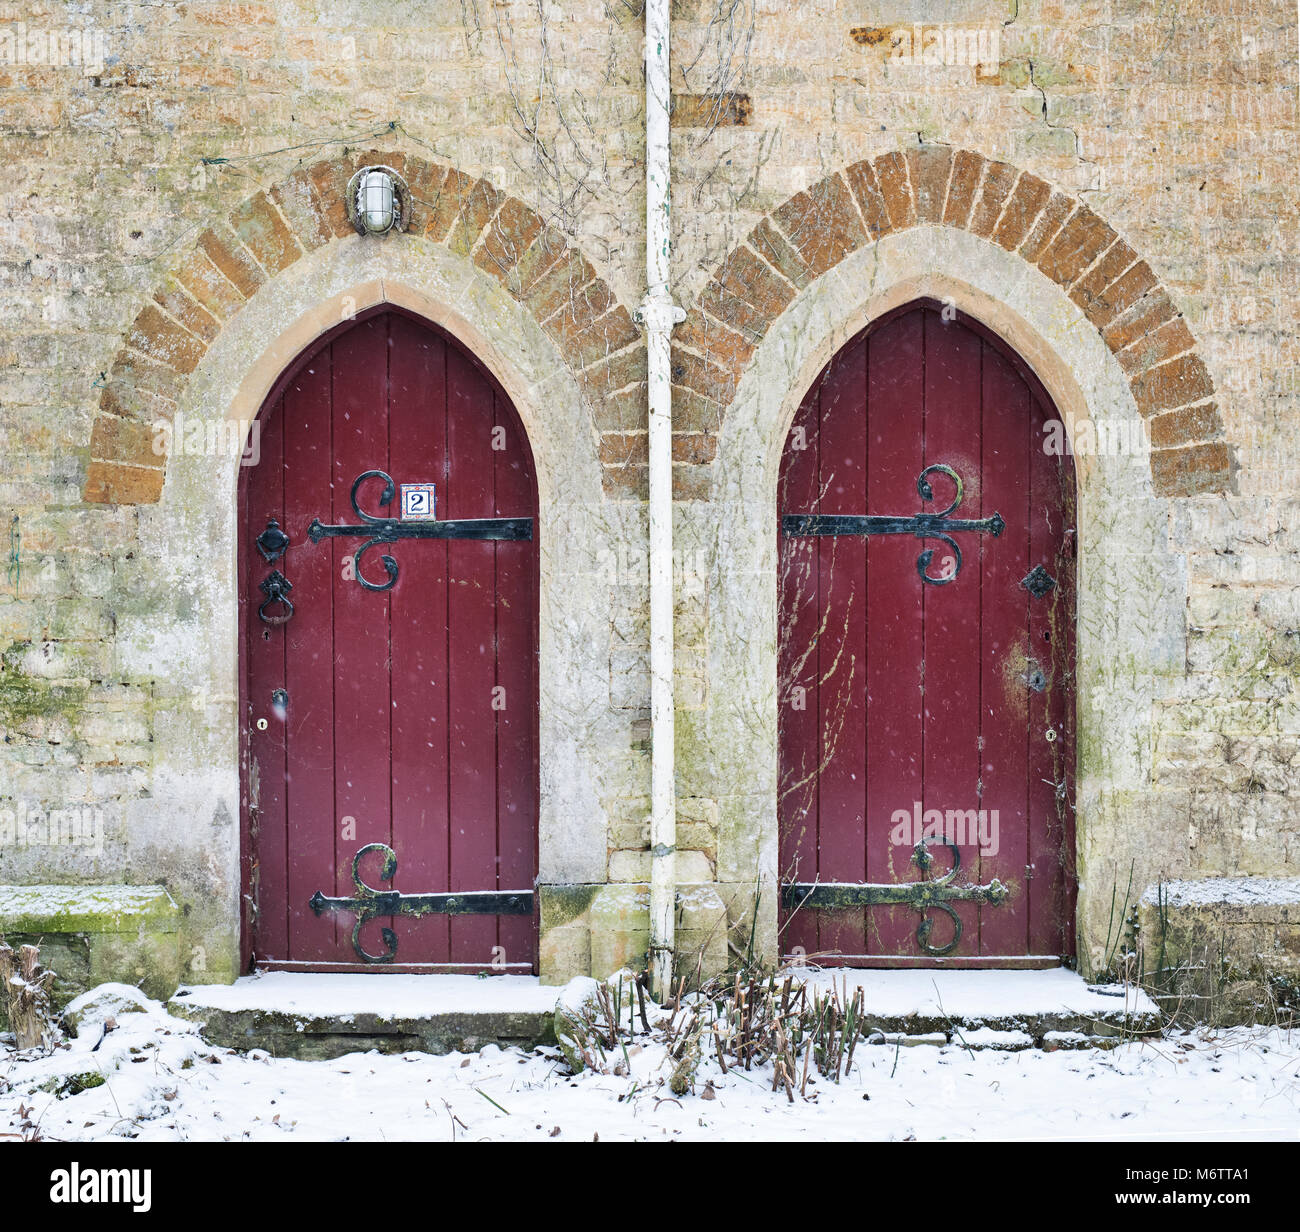 Two dark red / maroon arched cottage doors in Little Tew in the winter snow. Little Tew, Cotswolds, Oxfordshire, - Stock Image